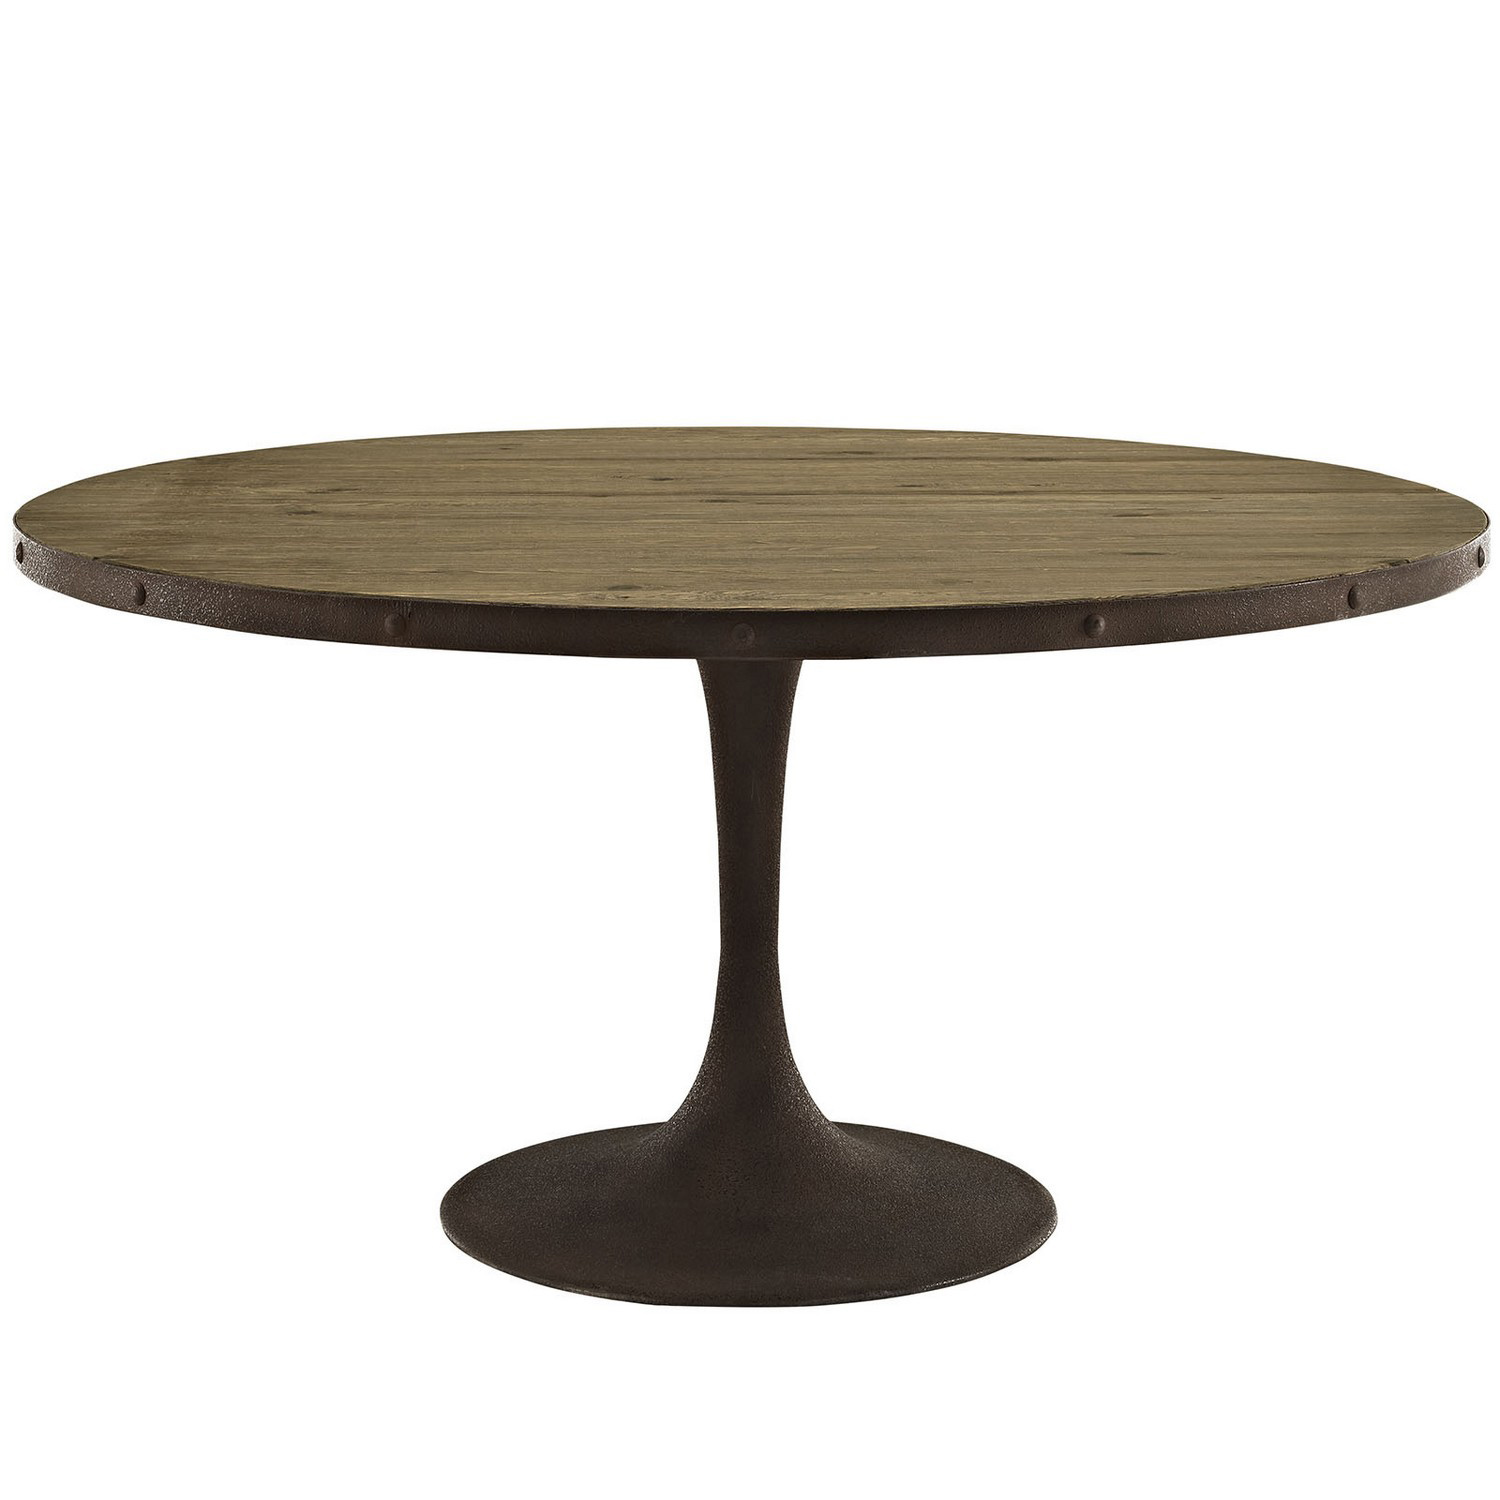 Modway drive 60 inch round wood top dining table brown mw eei 2005 brn set at - Inch round wood table top ...